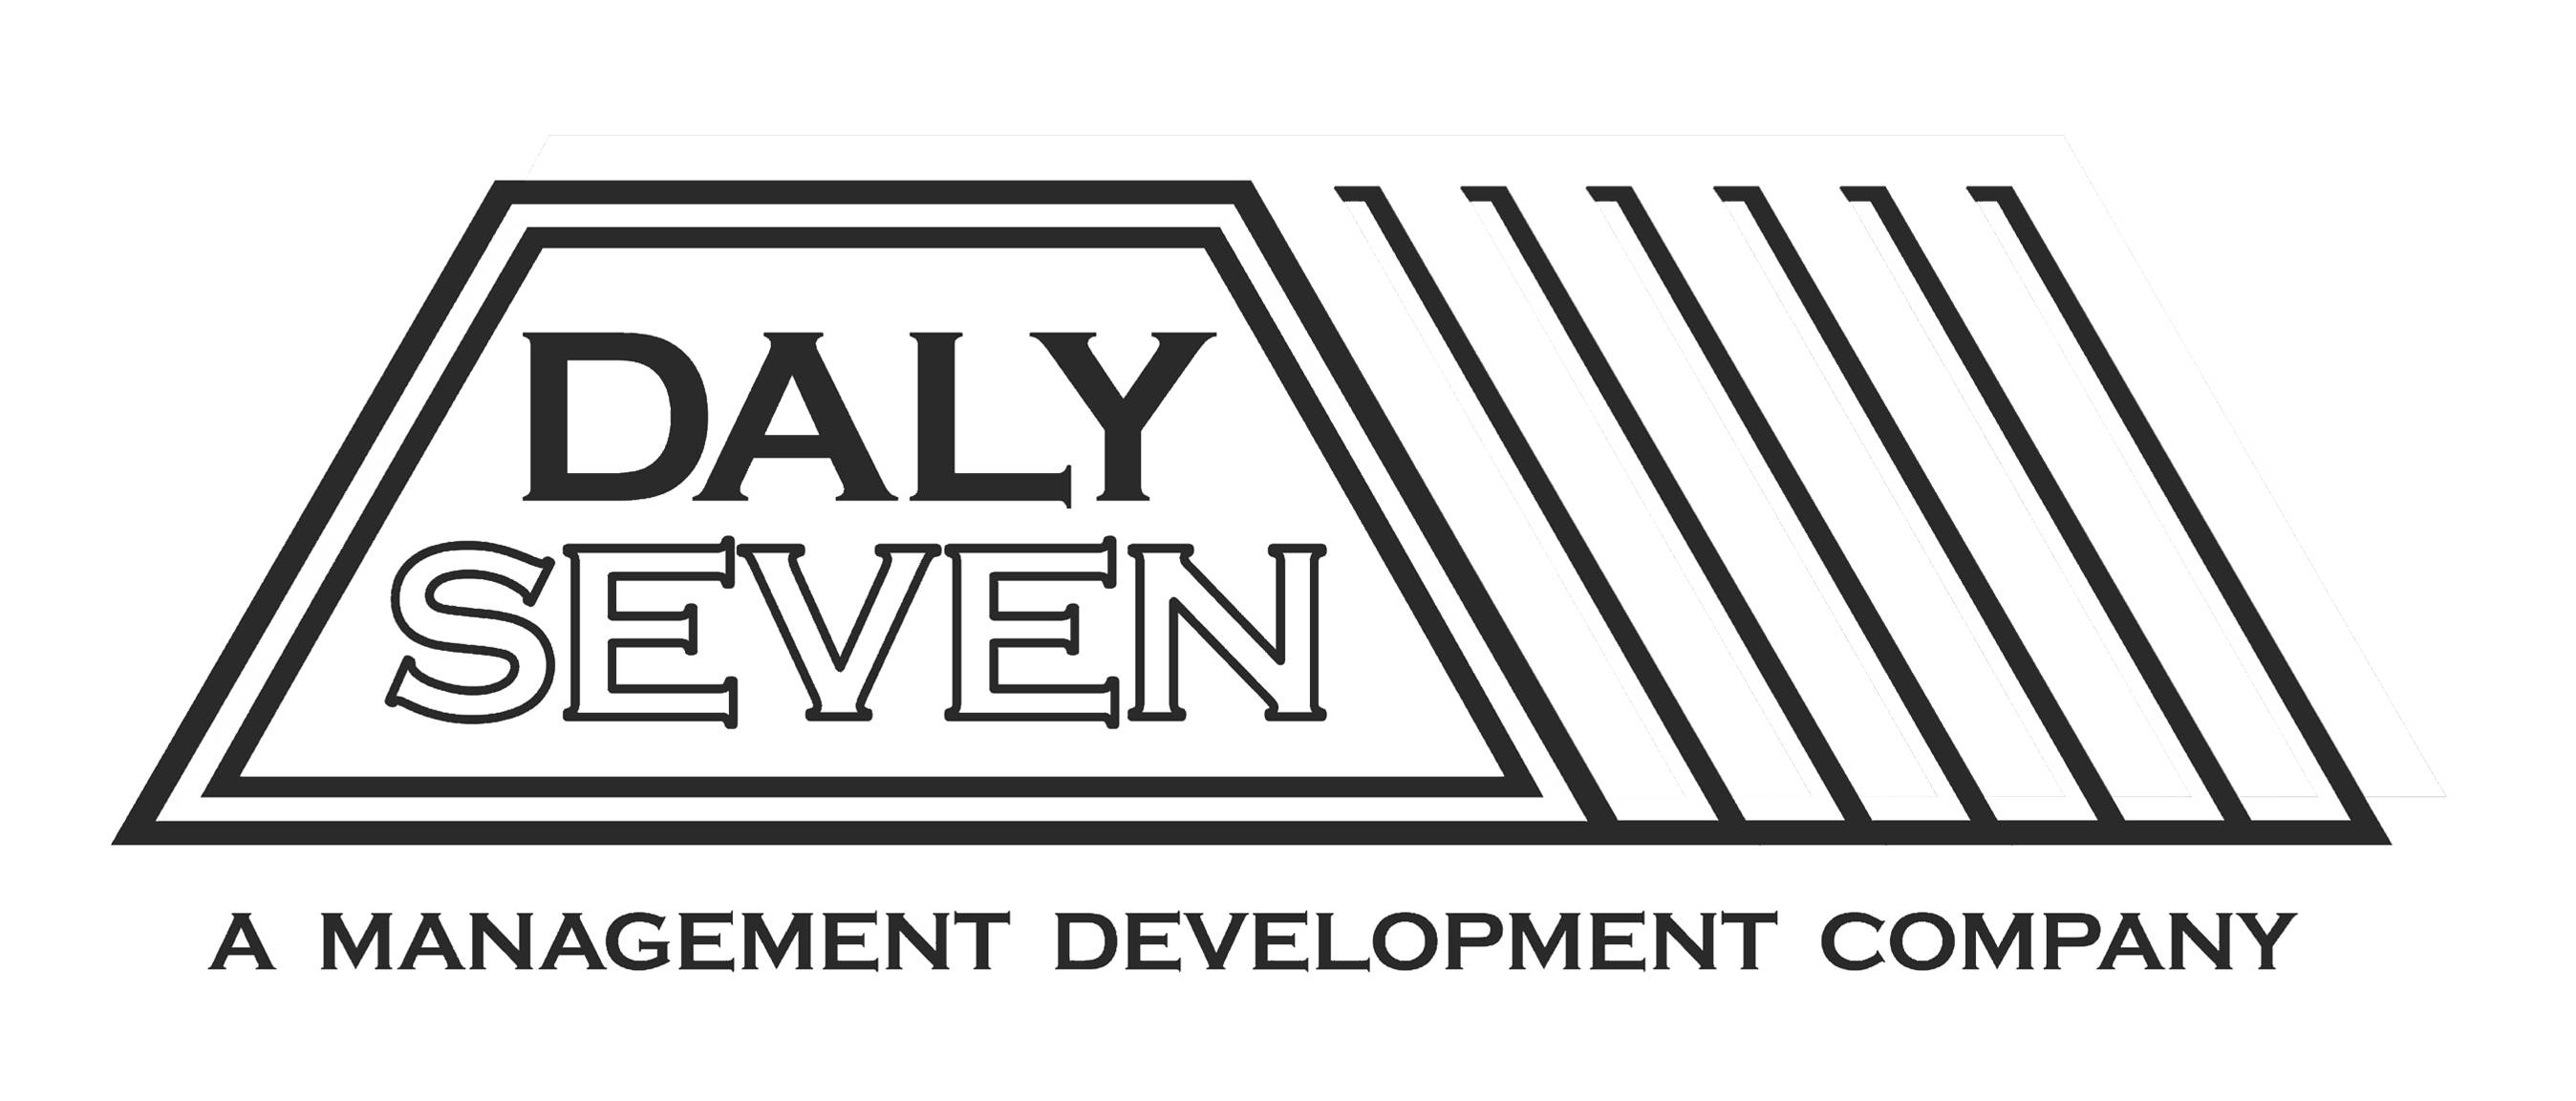 Daly Seven - Hotel Management Co.